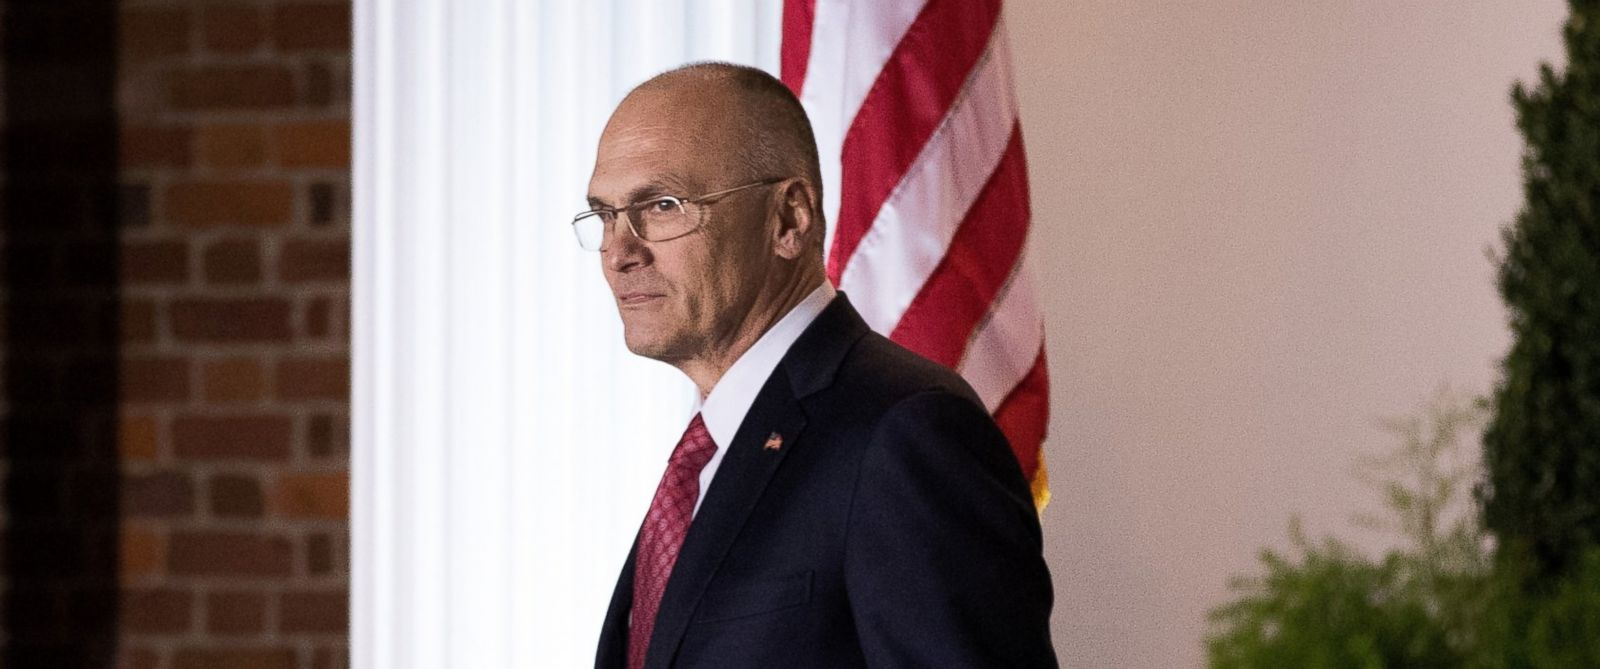 PHOTO: Andrew Puzder, chief executive of CKE Restaurants, exits after his meeting with president-elect Donald Trump at Trump International Golf Club, Nov. 19, 2016, in Bedminster Township, New Jersey.